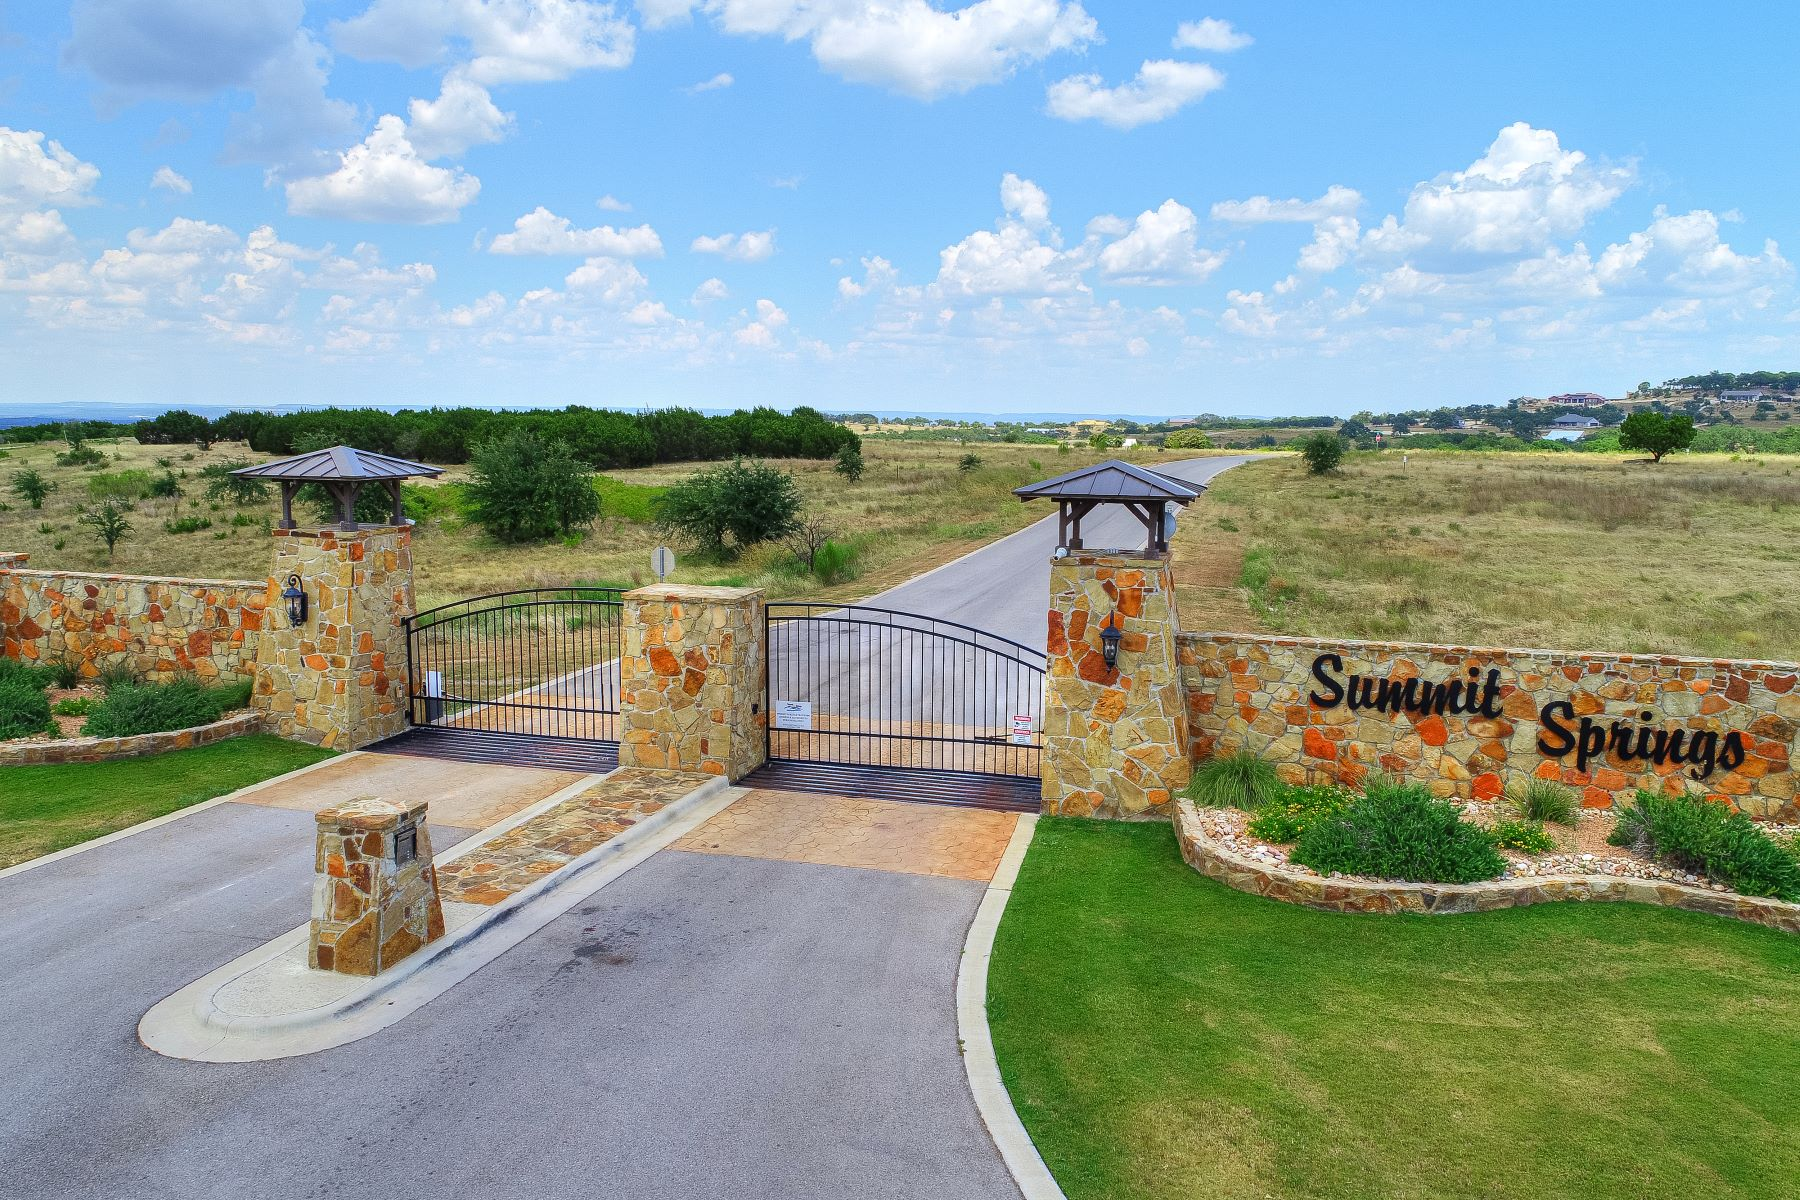 Land for Sale at 5 Acres in Gated Summit Springs Lot 20 Summit Springs Blackbuck Ct. Marble Falls, Texas 78654 United States